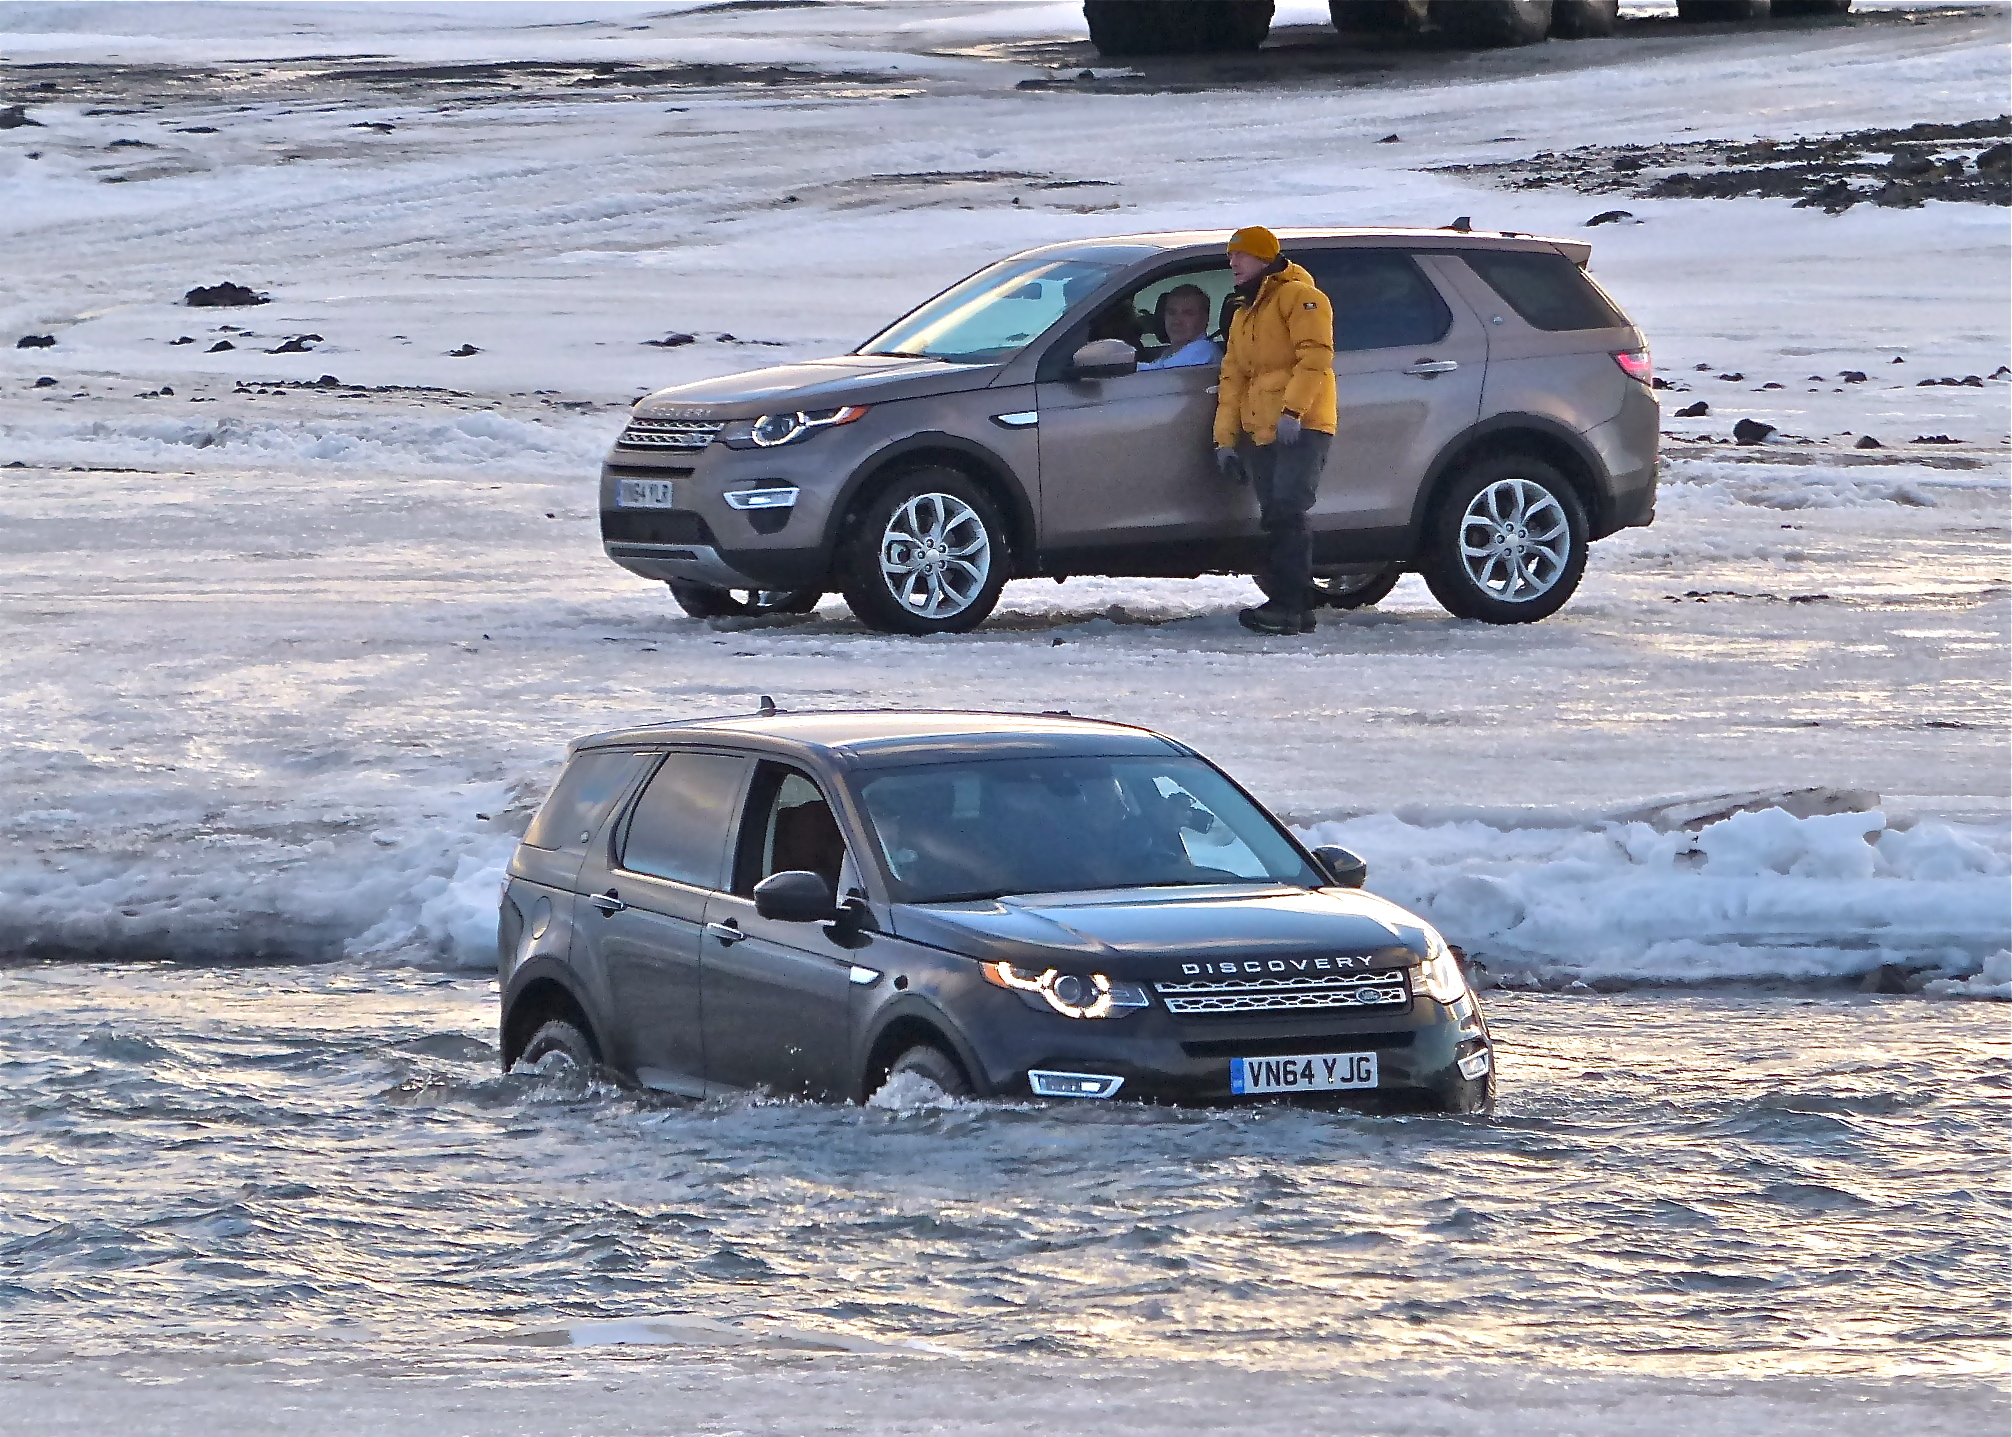 Iceland's Hvita River has 18-pound salmon, and a few Land Rover Discovery Sports.